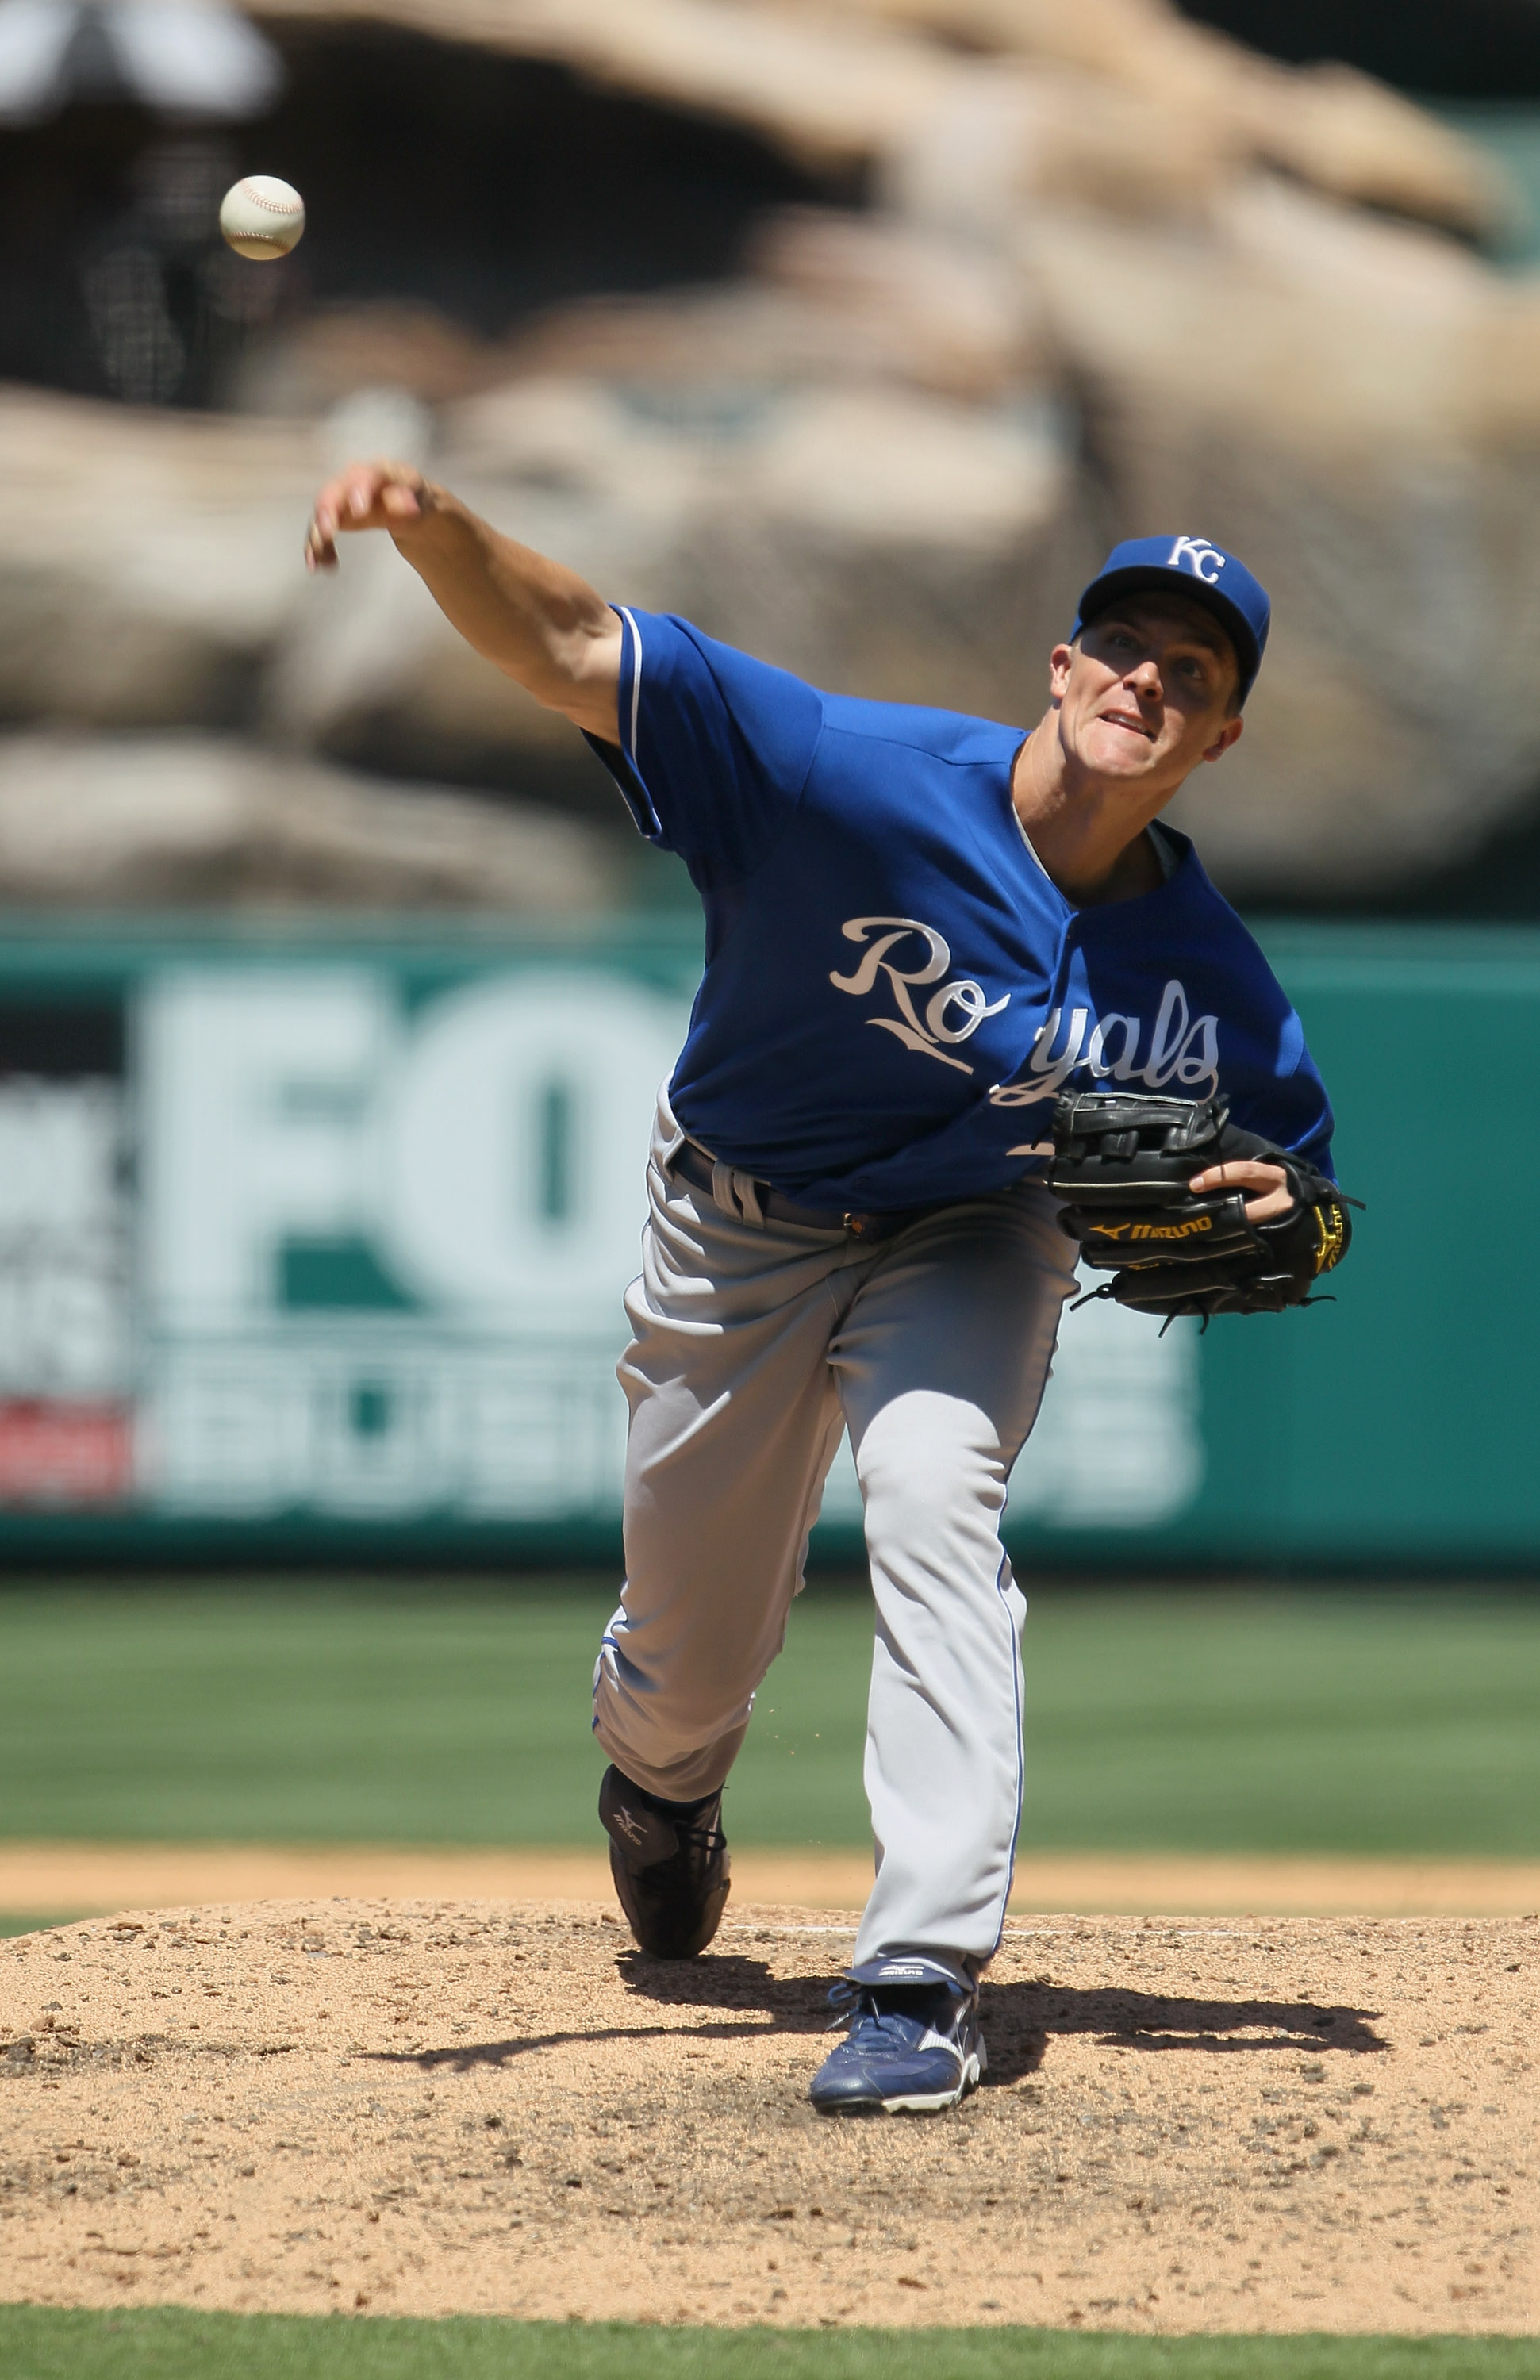 Greinke could be a gamble, but could also pay off in the long-run.